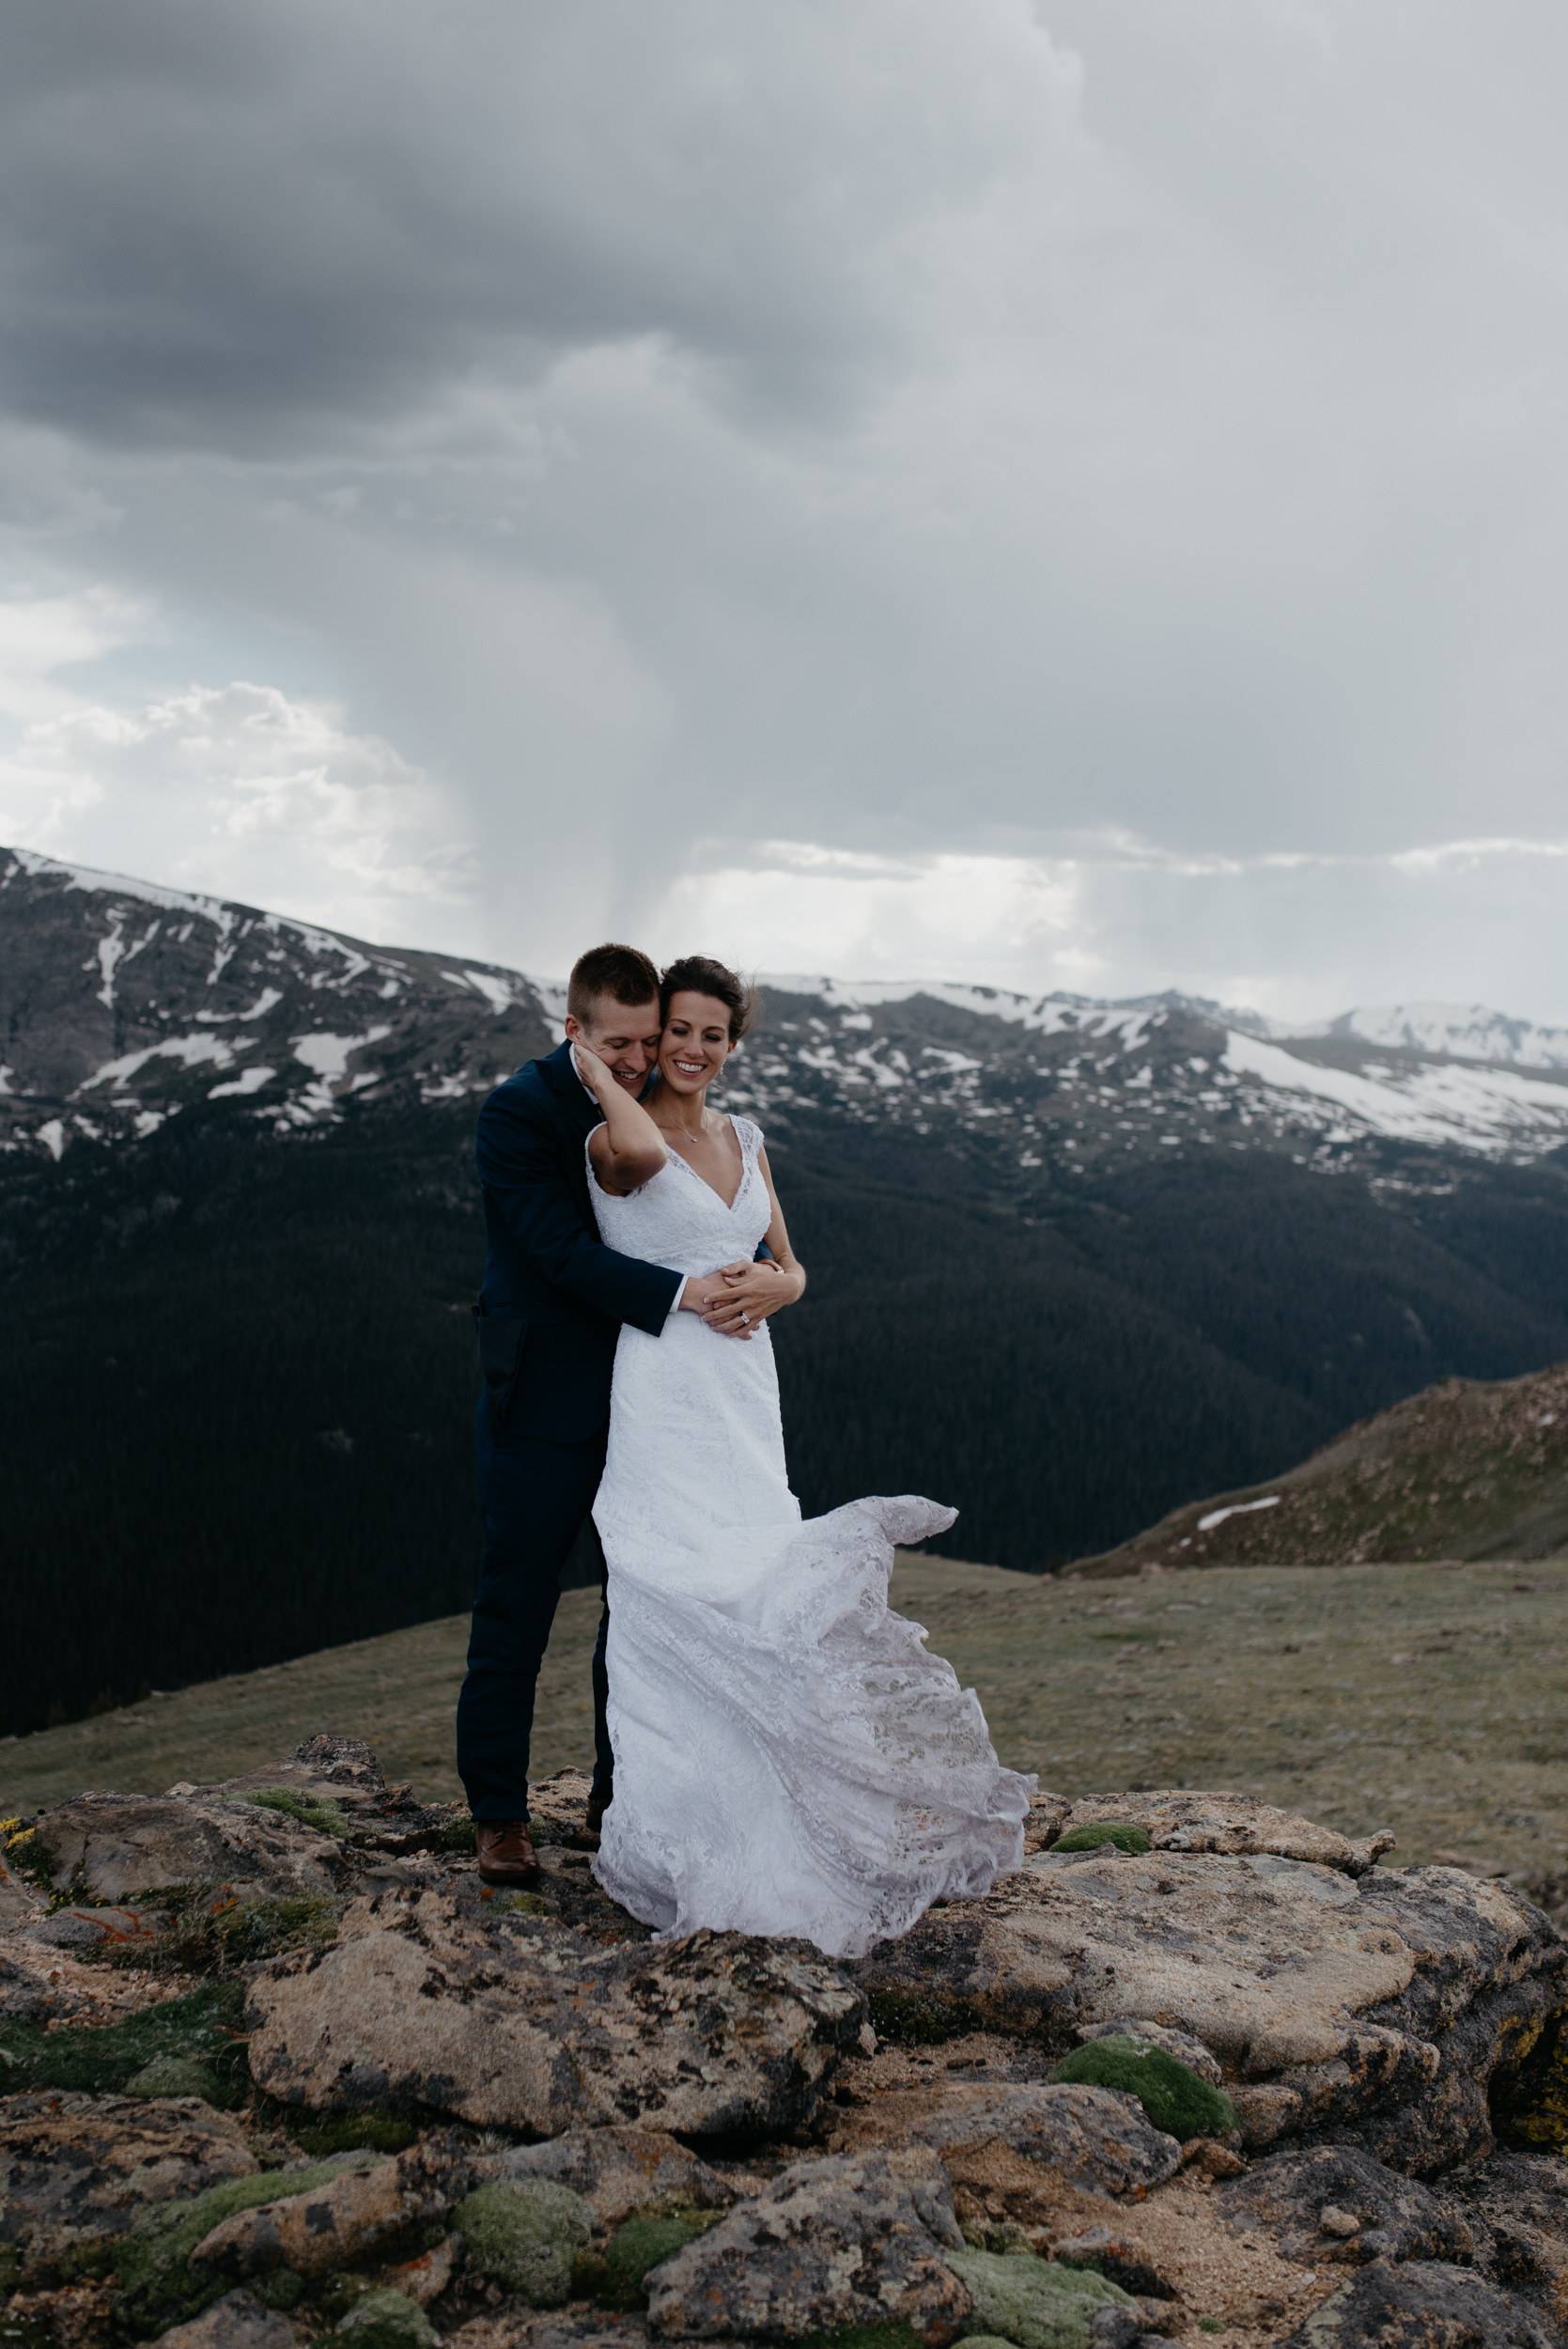 Colorado elopement photography. Trail Ridge Road elopement. Rocky Mountain National Park wedding photographer.